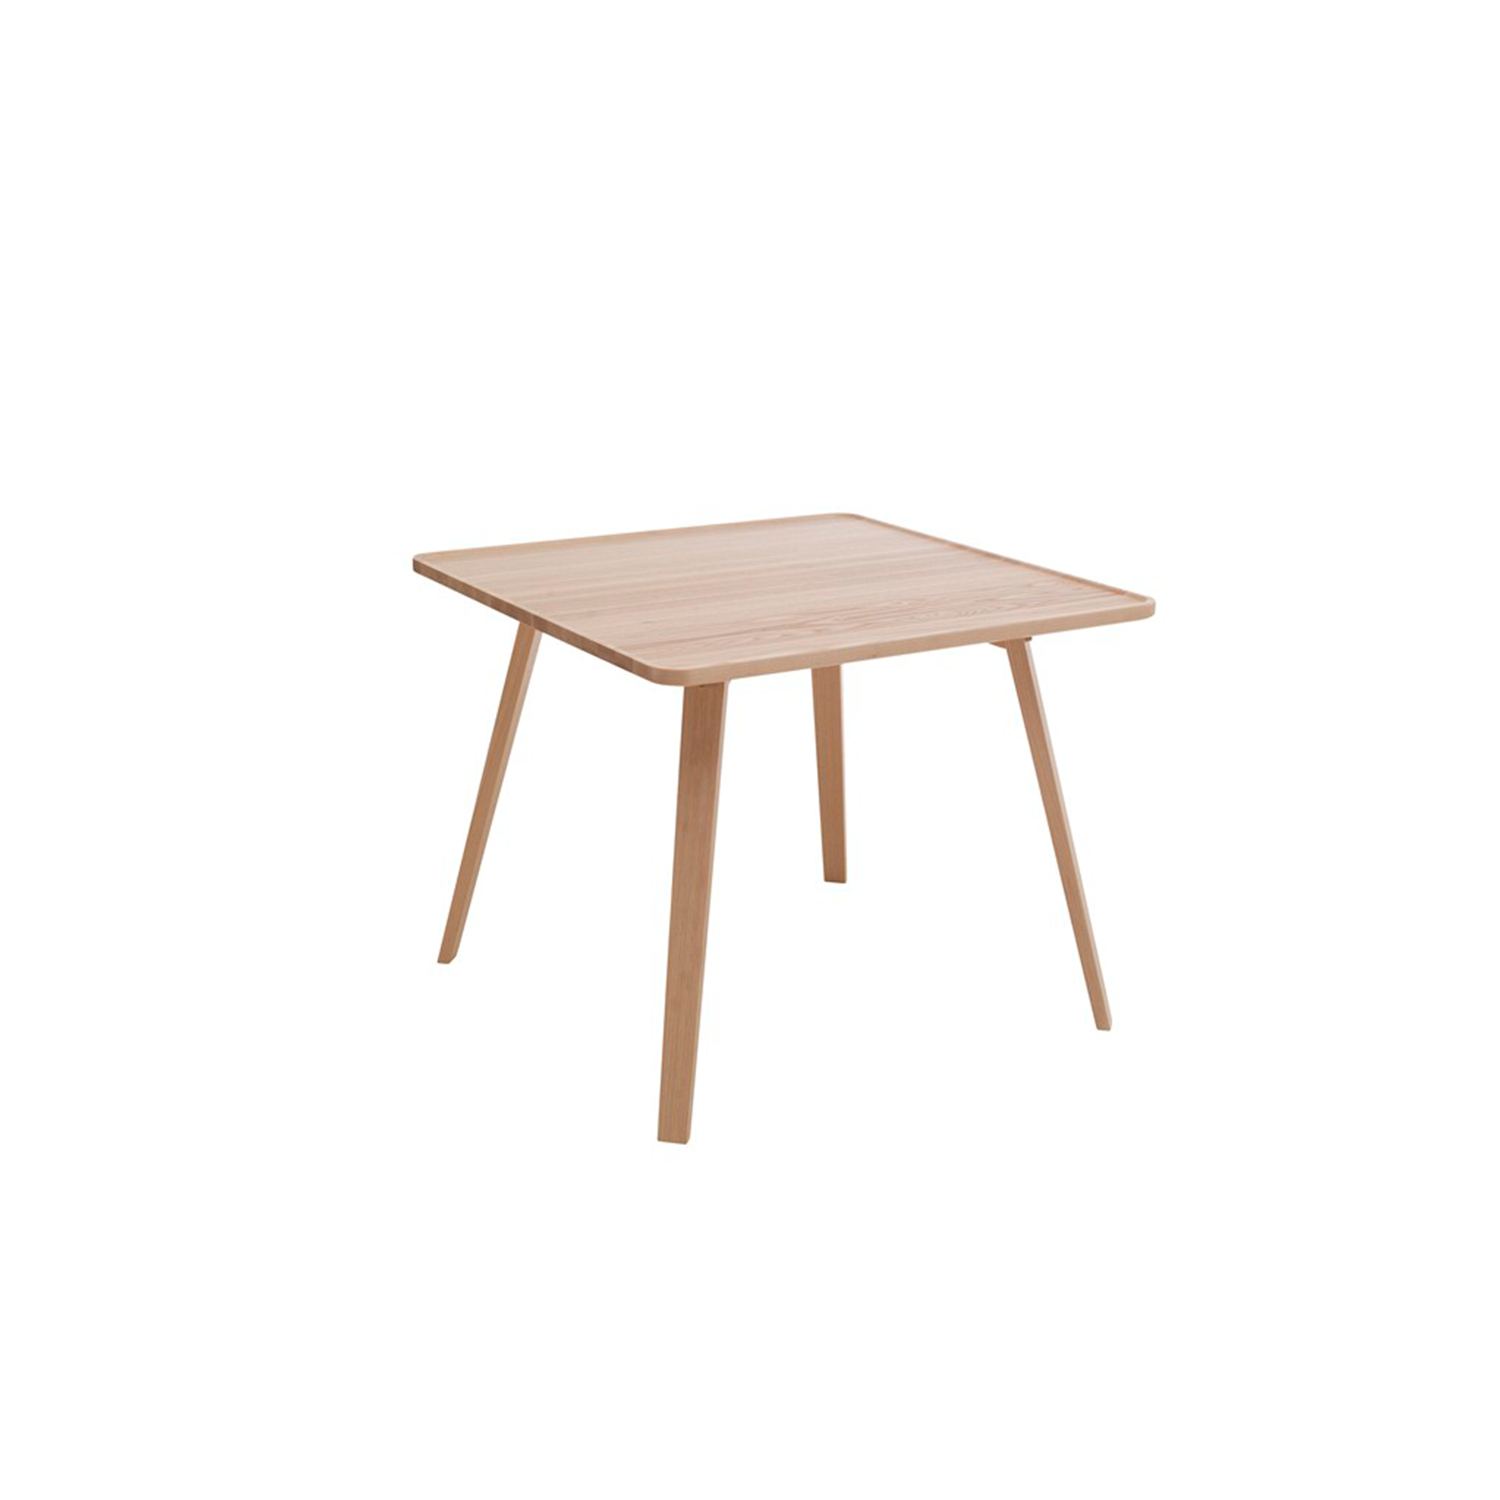 Mill Square Table - Mill (2012) is a table with a solid wooden top and legs. The tabletop has been milled down to produce its distinctive appearance. Mill is available with a round, square or rectangular top in a number of different sizes and in heights of 460, 590 and 720 mm. The table is made of solid wood, so it can be sanded down and relacquered a number of times, making it suitable for use in settings where it is subjected to a lot of wear and tear.  Mill comes in a choice of oak, birch, ash, standard stains on ash and white glazed oak or ash. The table is also available in standard colors with tabletop made in MDF. Special sizes and other finishes upon request. You can use Mill to furnish cafés, kitchens and living rooms, or in hotels, schools, waiting areas etc.  Additional heights and dimensions are available, please see technical sheet attached and enquire for more details. | Matter of Stuff